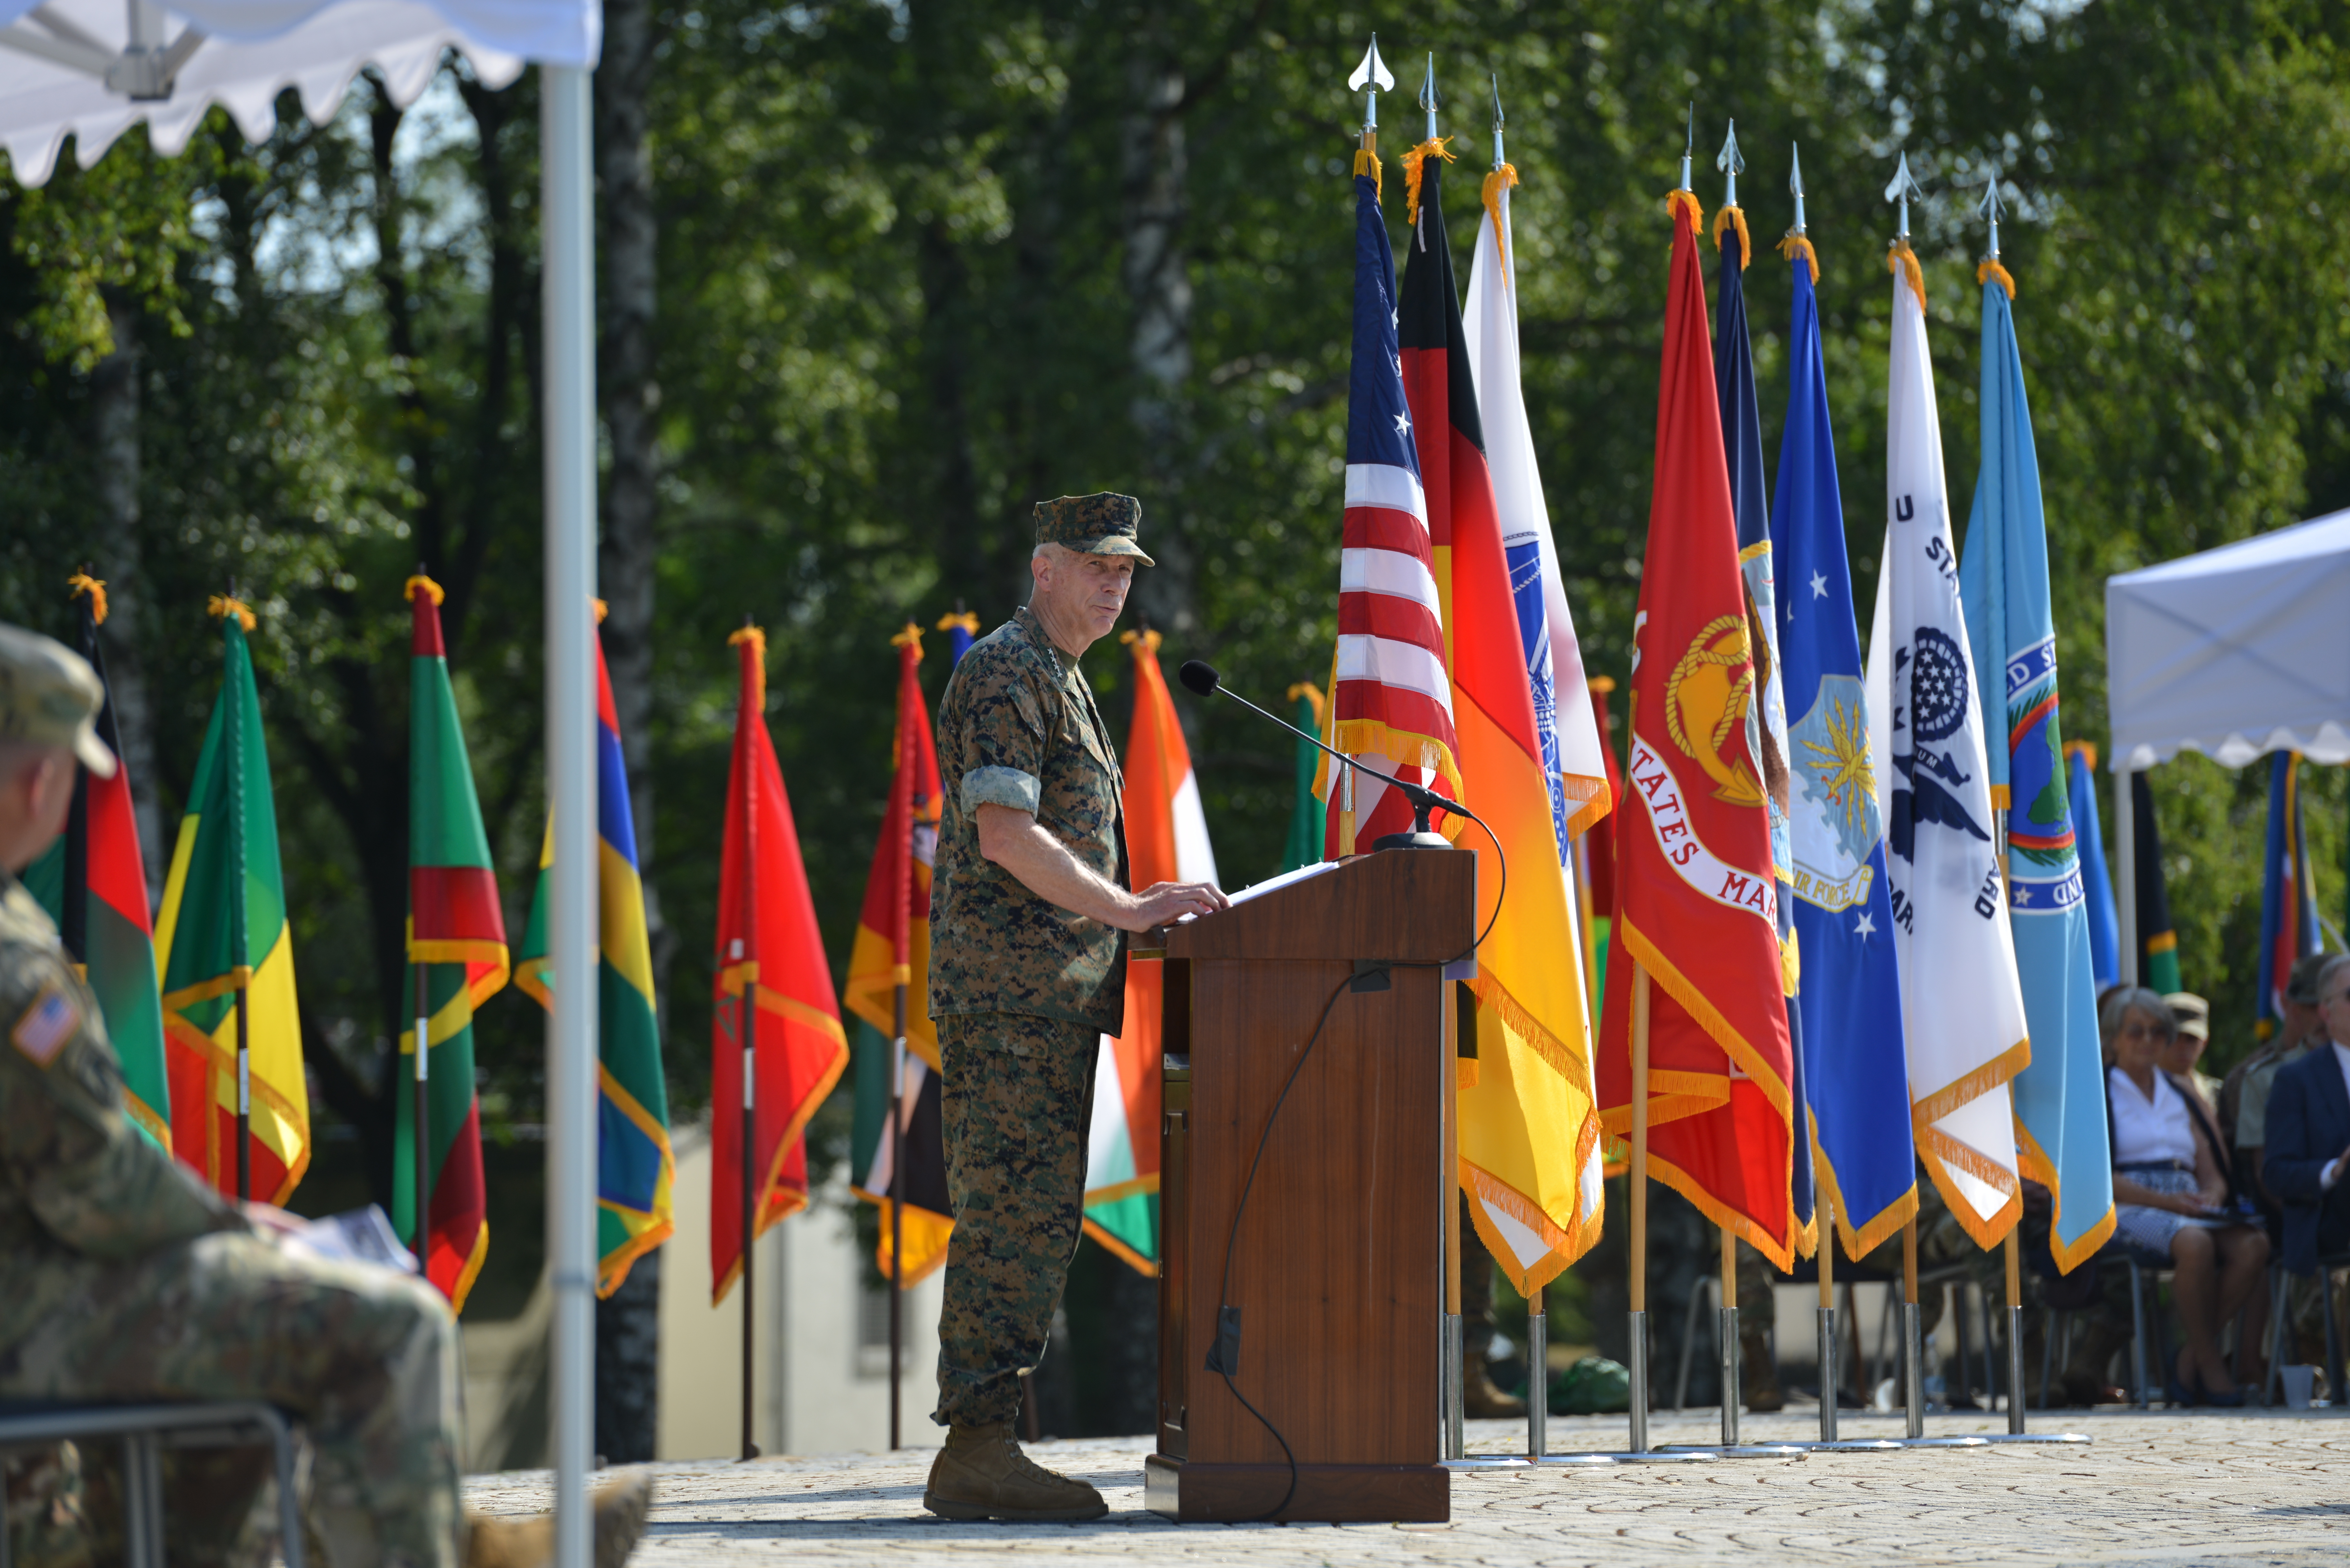 Marine Corps Gen. Thomas D. Waldhauser, outgoing commander, speaks during the AFRICOM change of command ceremony at Patch Barracks in Stuttgart, Germany, July 26, 2019. AFRICOM is one of six of the U.S. Defense Department's geographic unified commands and is responsible to the Secretary of Defense for military relations with African nations, the African Union, and African regional security organizations. (U.S. Army photo by Jason Johnston/Released)